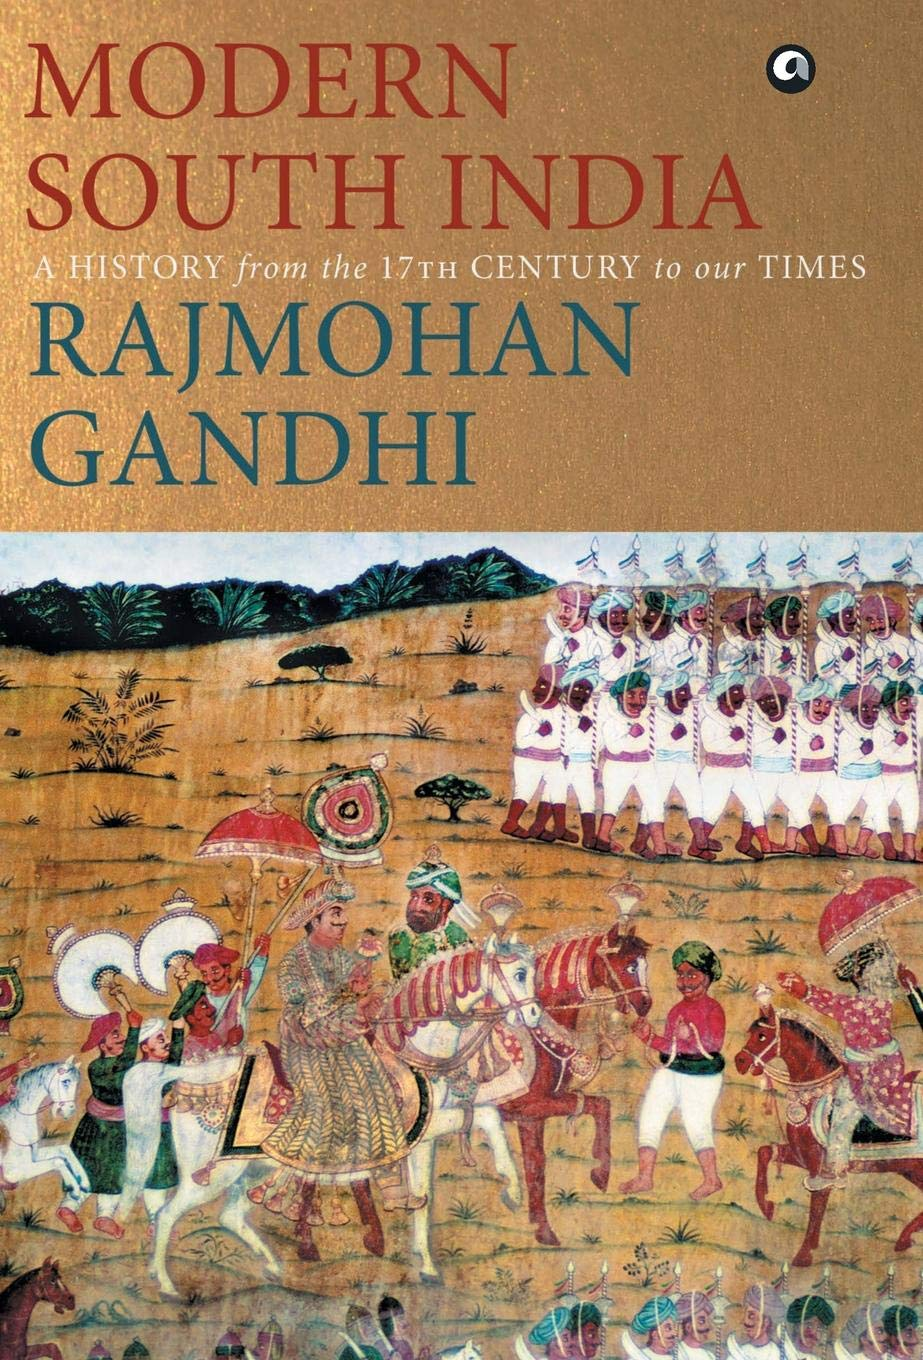 Modern South India: A History from the 17th Century to Our